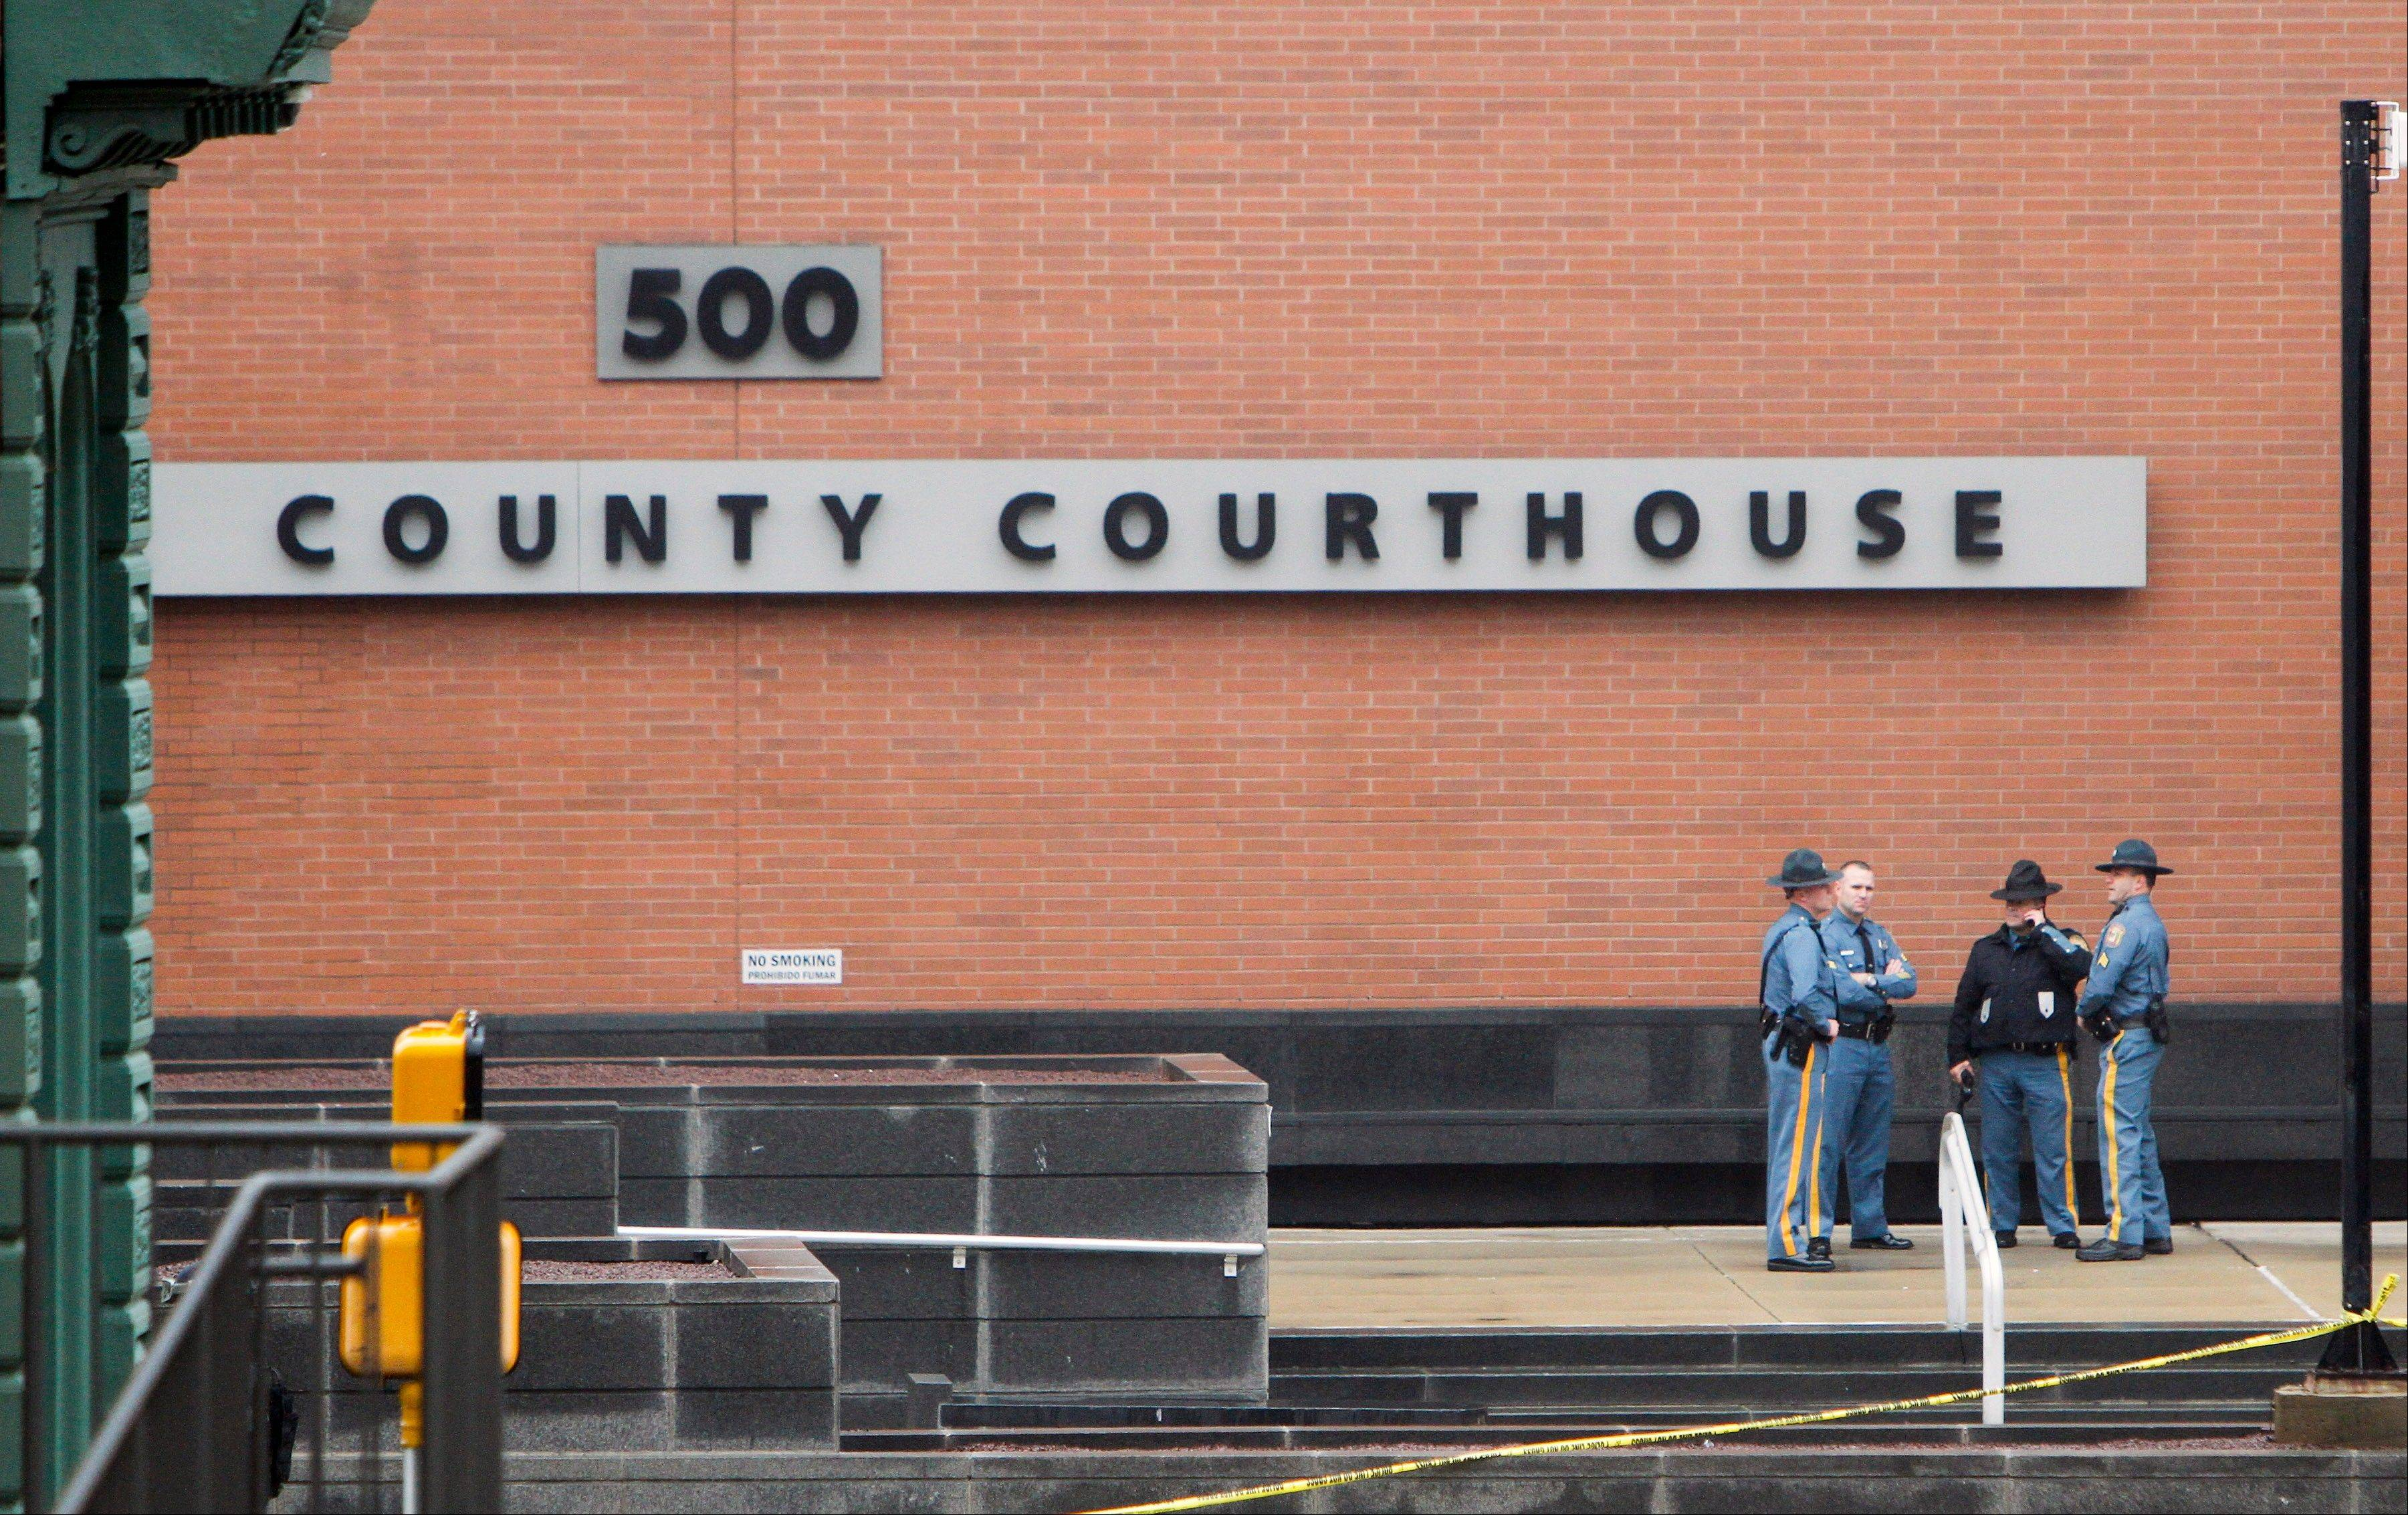 Law enforcement officials and investigators gather outside the New Castle County Courthouse in Wilmington, Del. on Monday, Feb. 11, 2013, after three people died Monday morning in a shooting at a courthouse, including the shooter, authorities said.